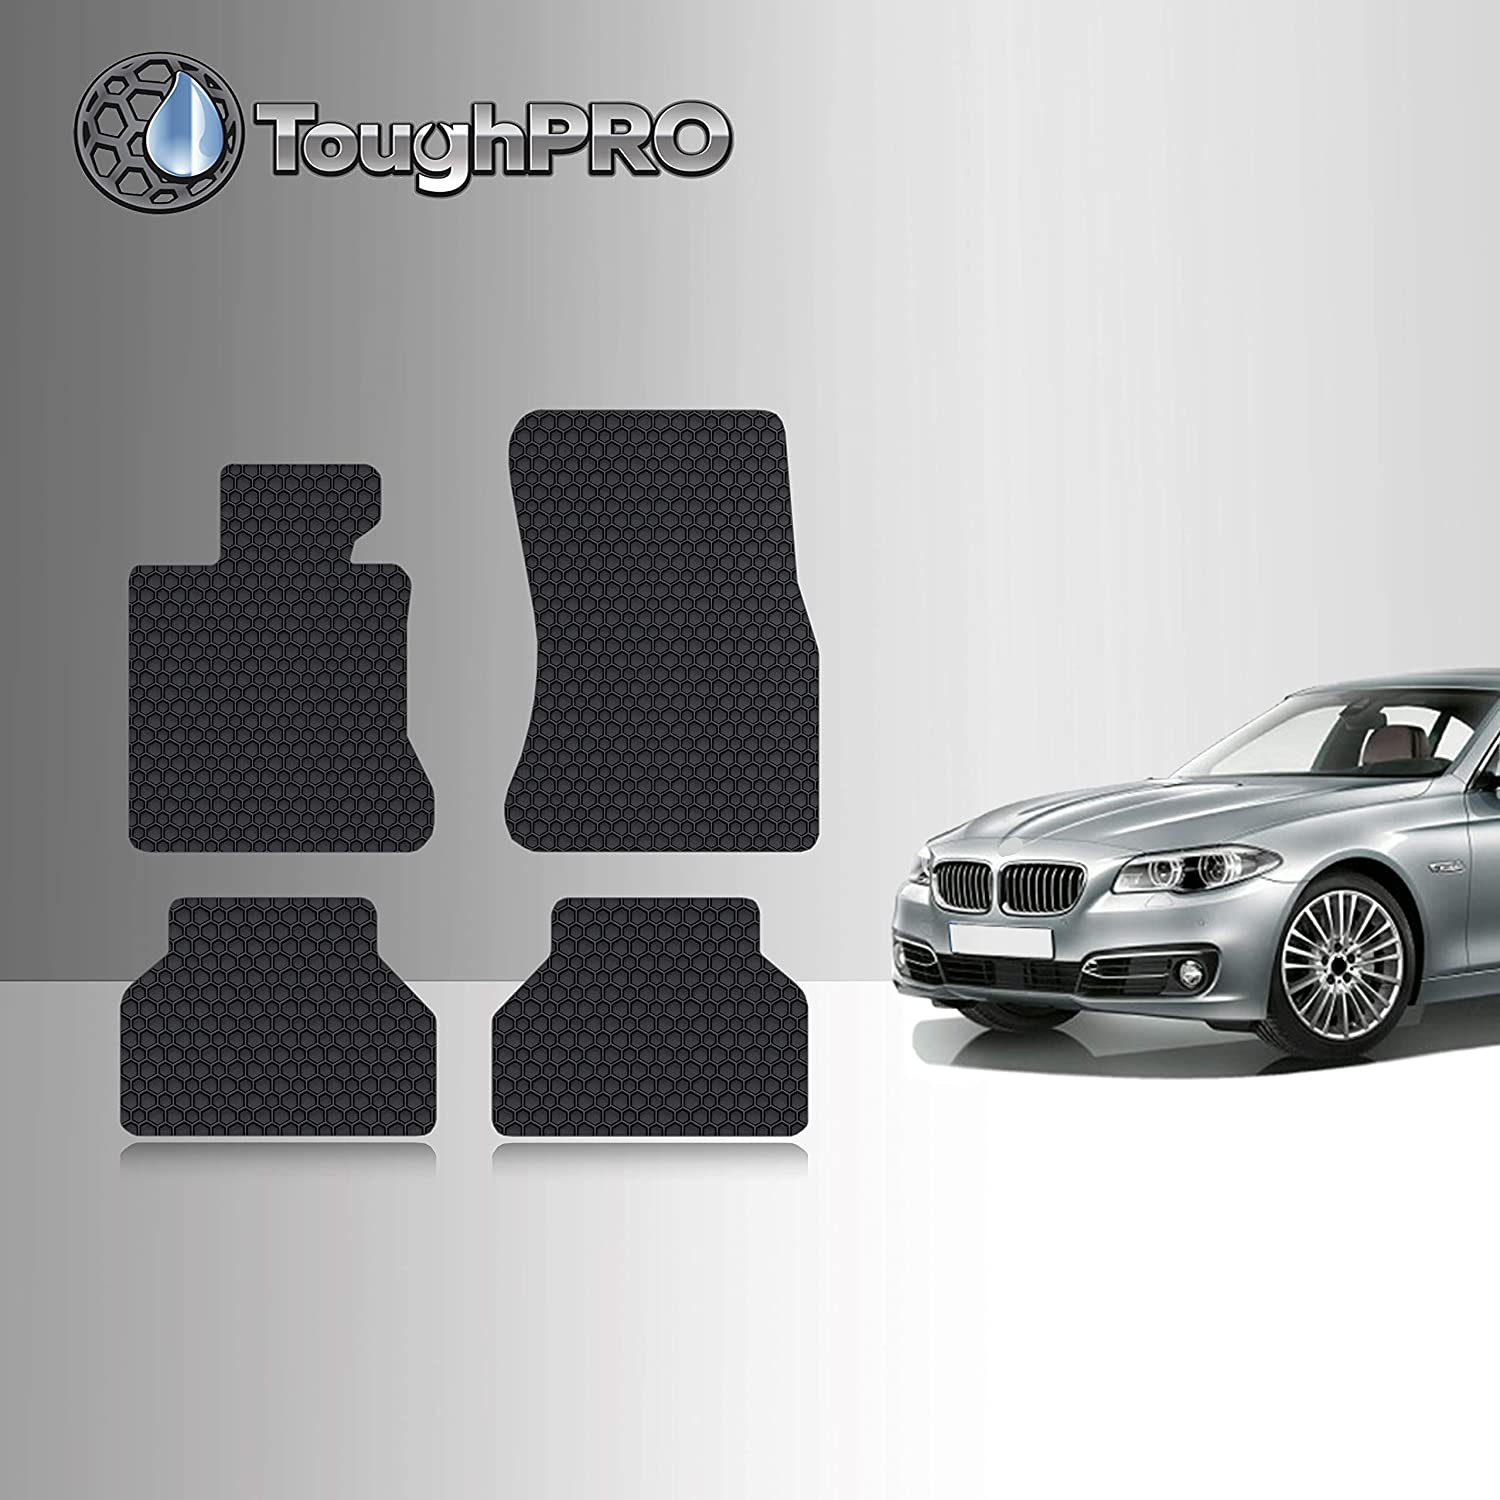 Heavy Duty - - Black Rubber Front Row + 2nd Row Made in USA 2008 TOUGHPRO Floor Mat Accessories Set Compatible with BMW X3 2006 2010 2009 2007 2004 2005 All Weather